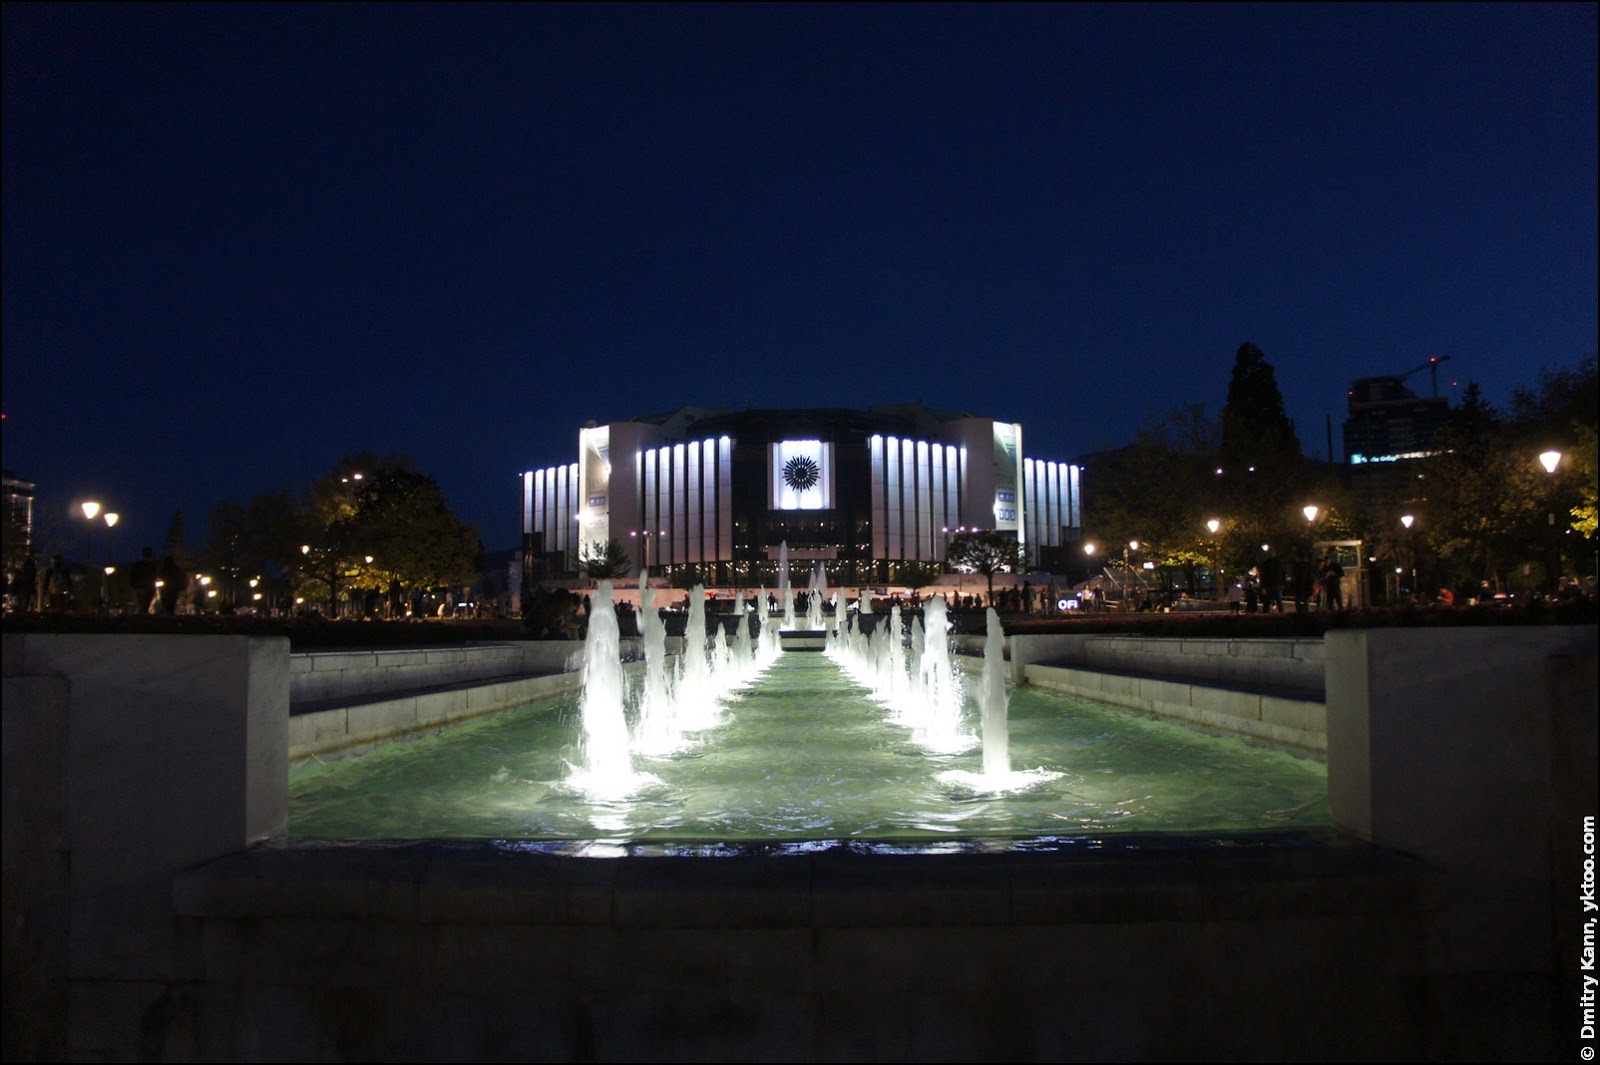 Fountains by night.